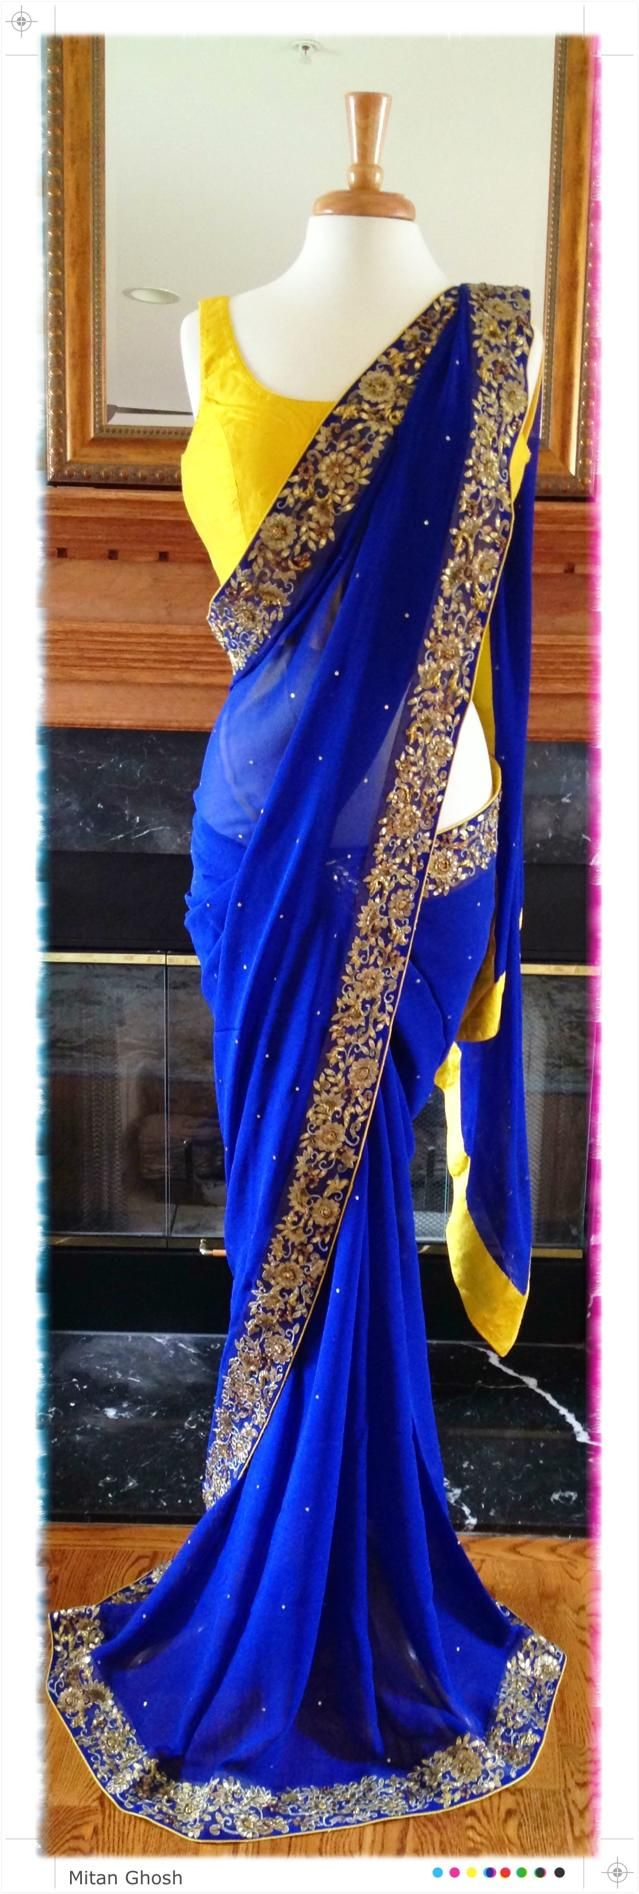 Gota patti with dabka work on a georgette saree by Mitan Ghosh http://www.pinterest.com/mitanghosh/ New Jersey